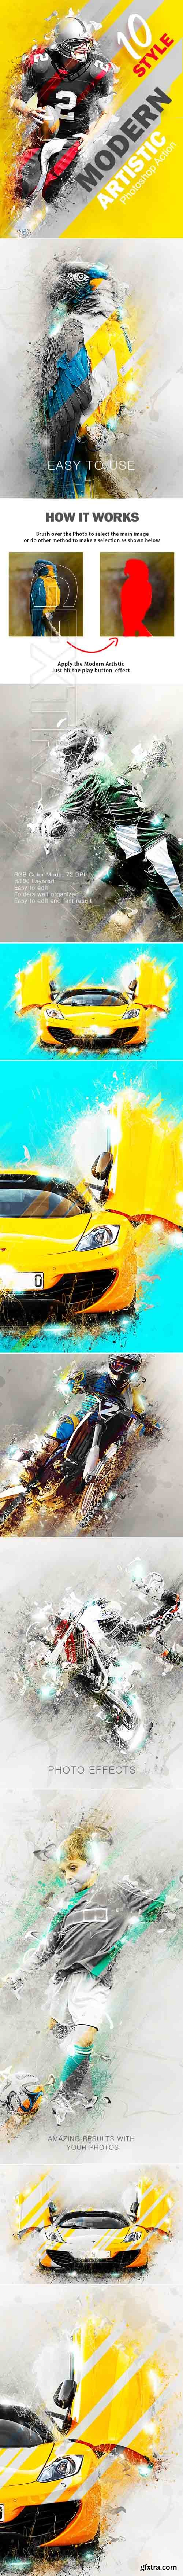 GraphicRiver - Modern Artistic Photoshop Action 20381155